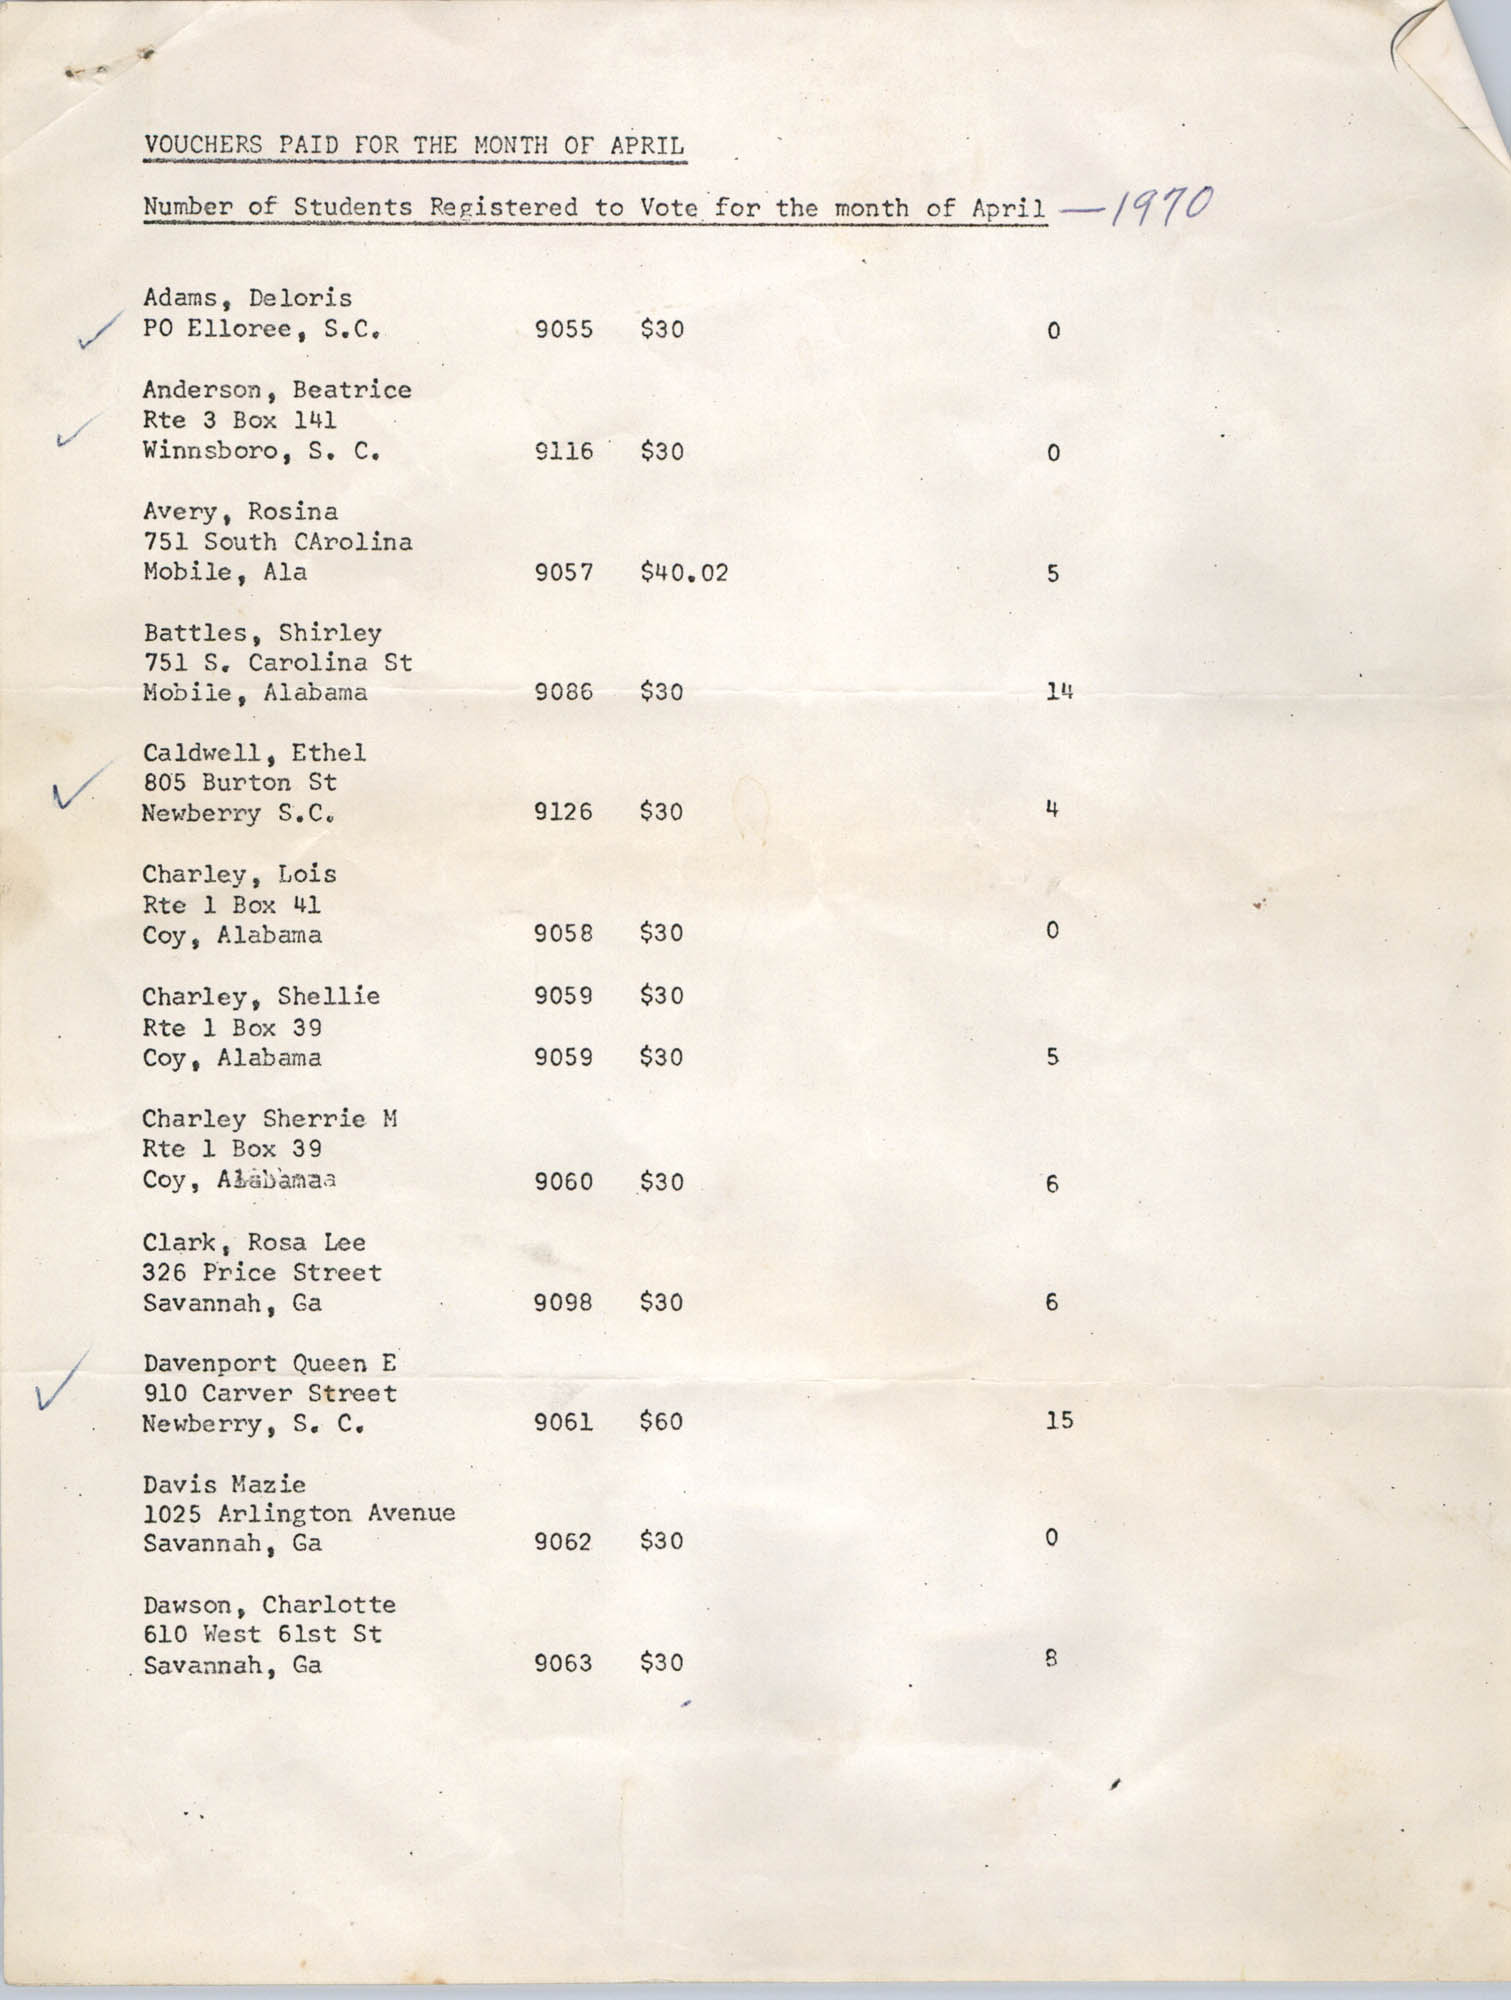 Student Registration, April 1970